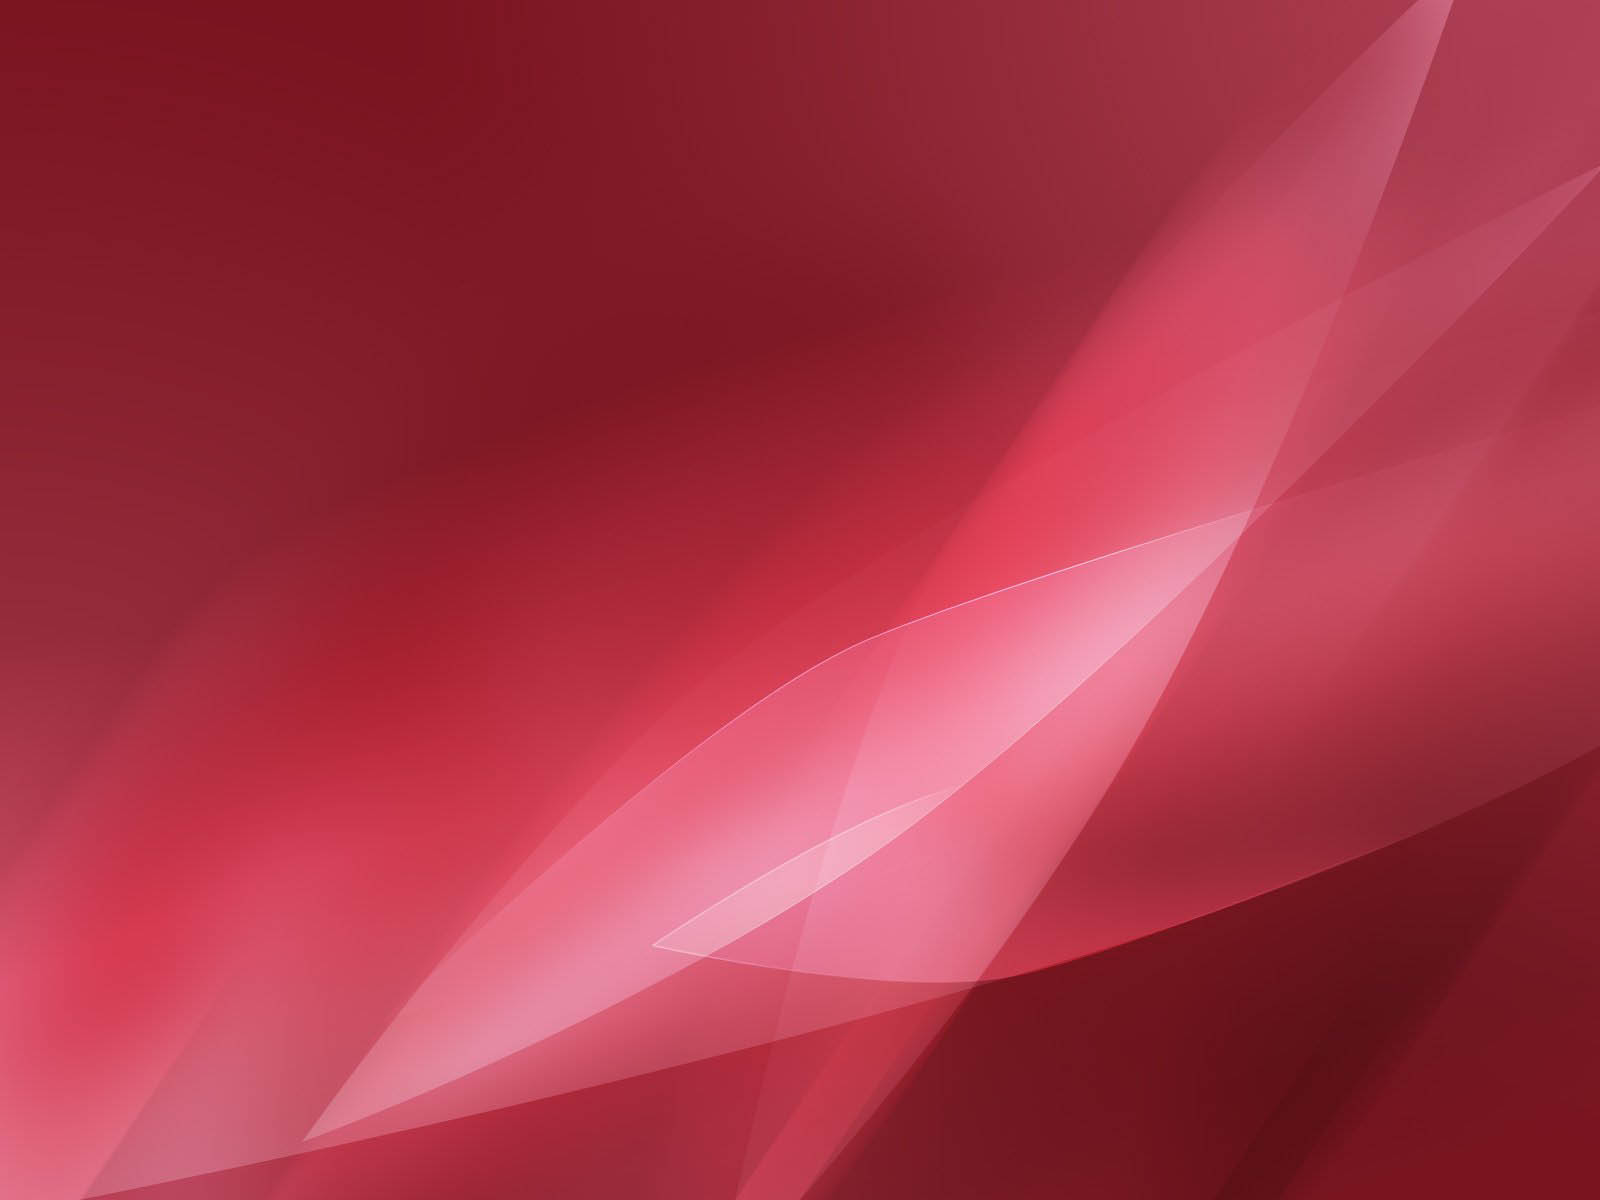 wallpaper: Abstract Red Wallpapers